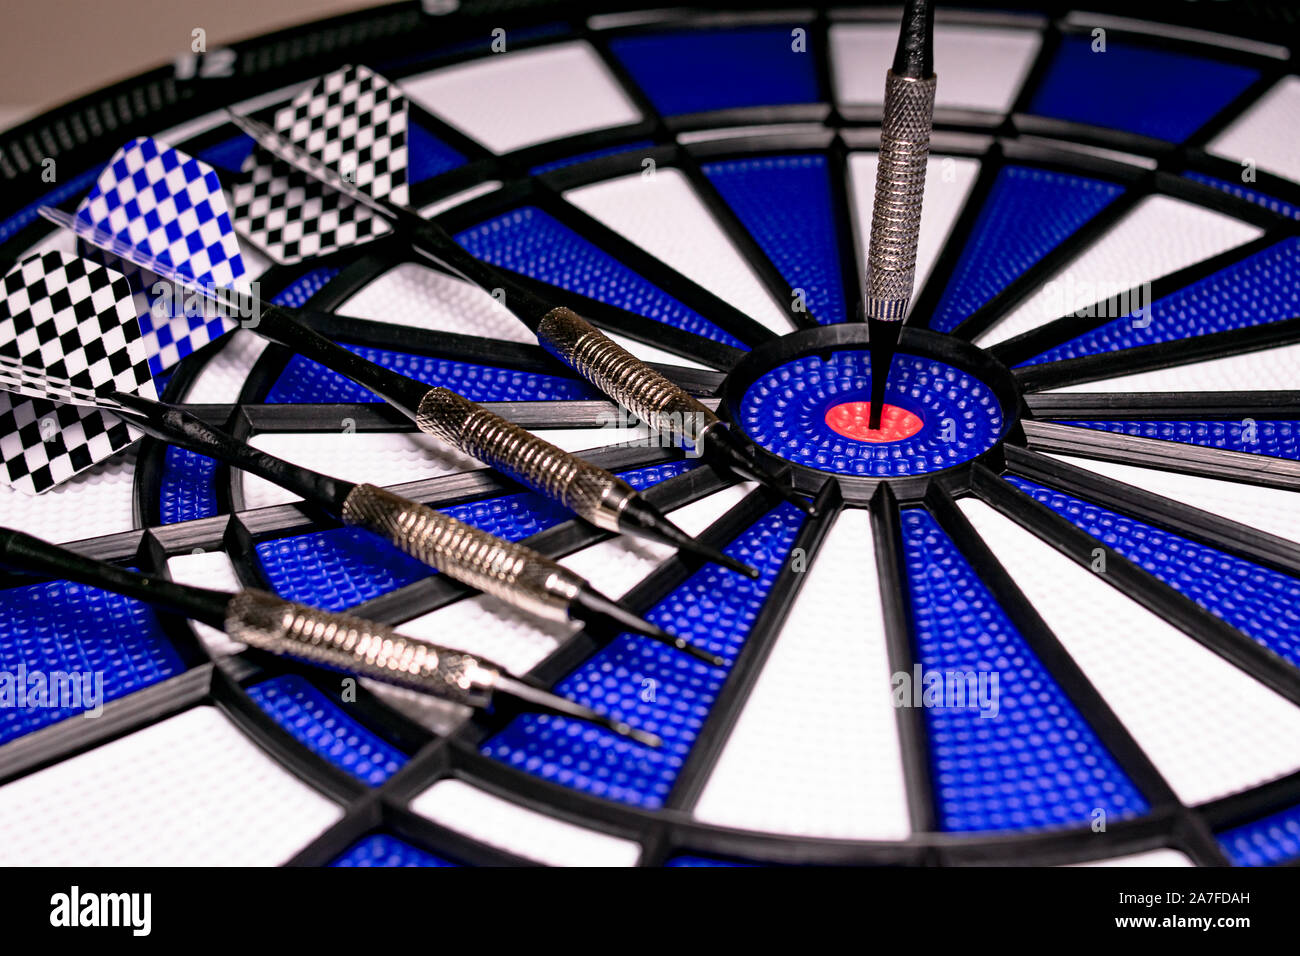 Traditional game of darts composed of target and darts in white and blue colors, with central point in red, and plastic material to avoid dangers and Stock Photo